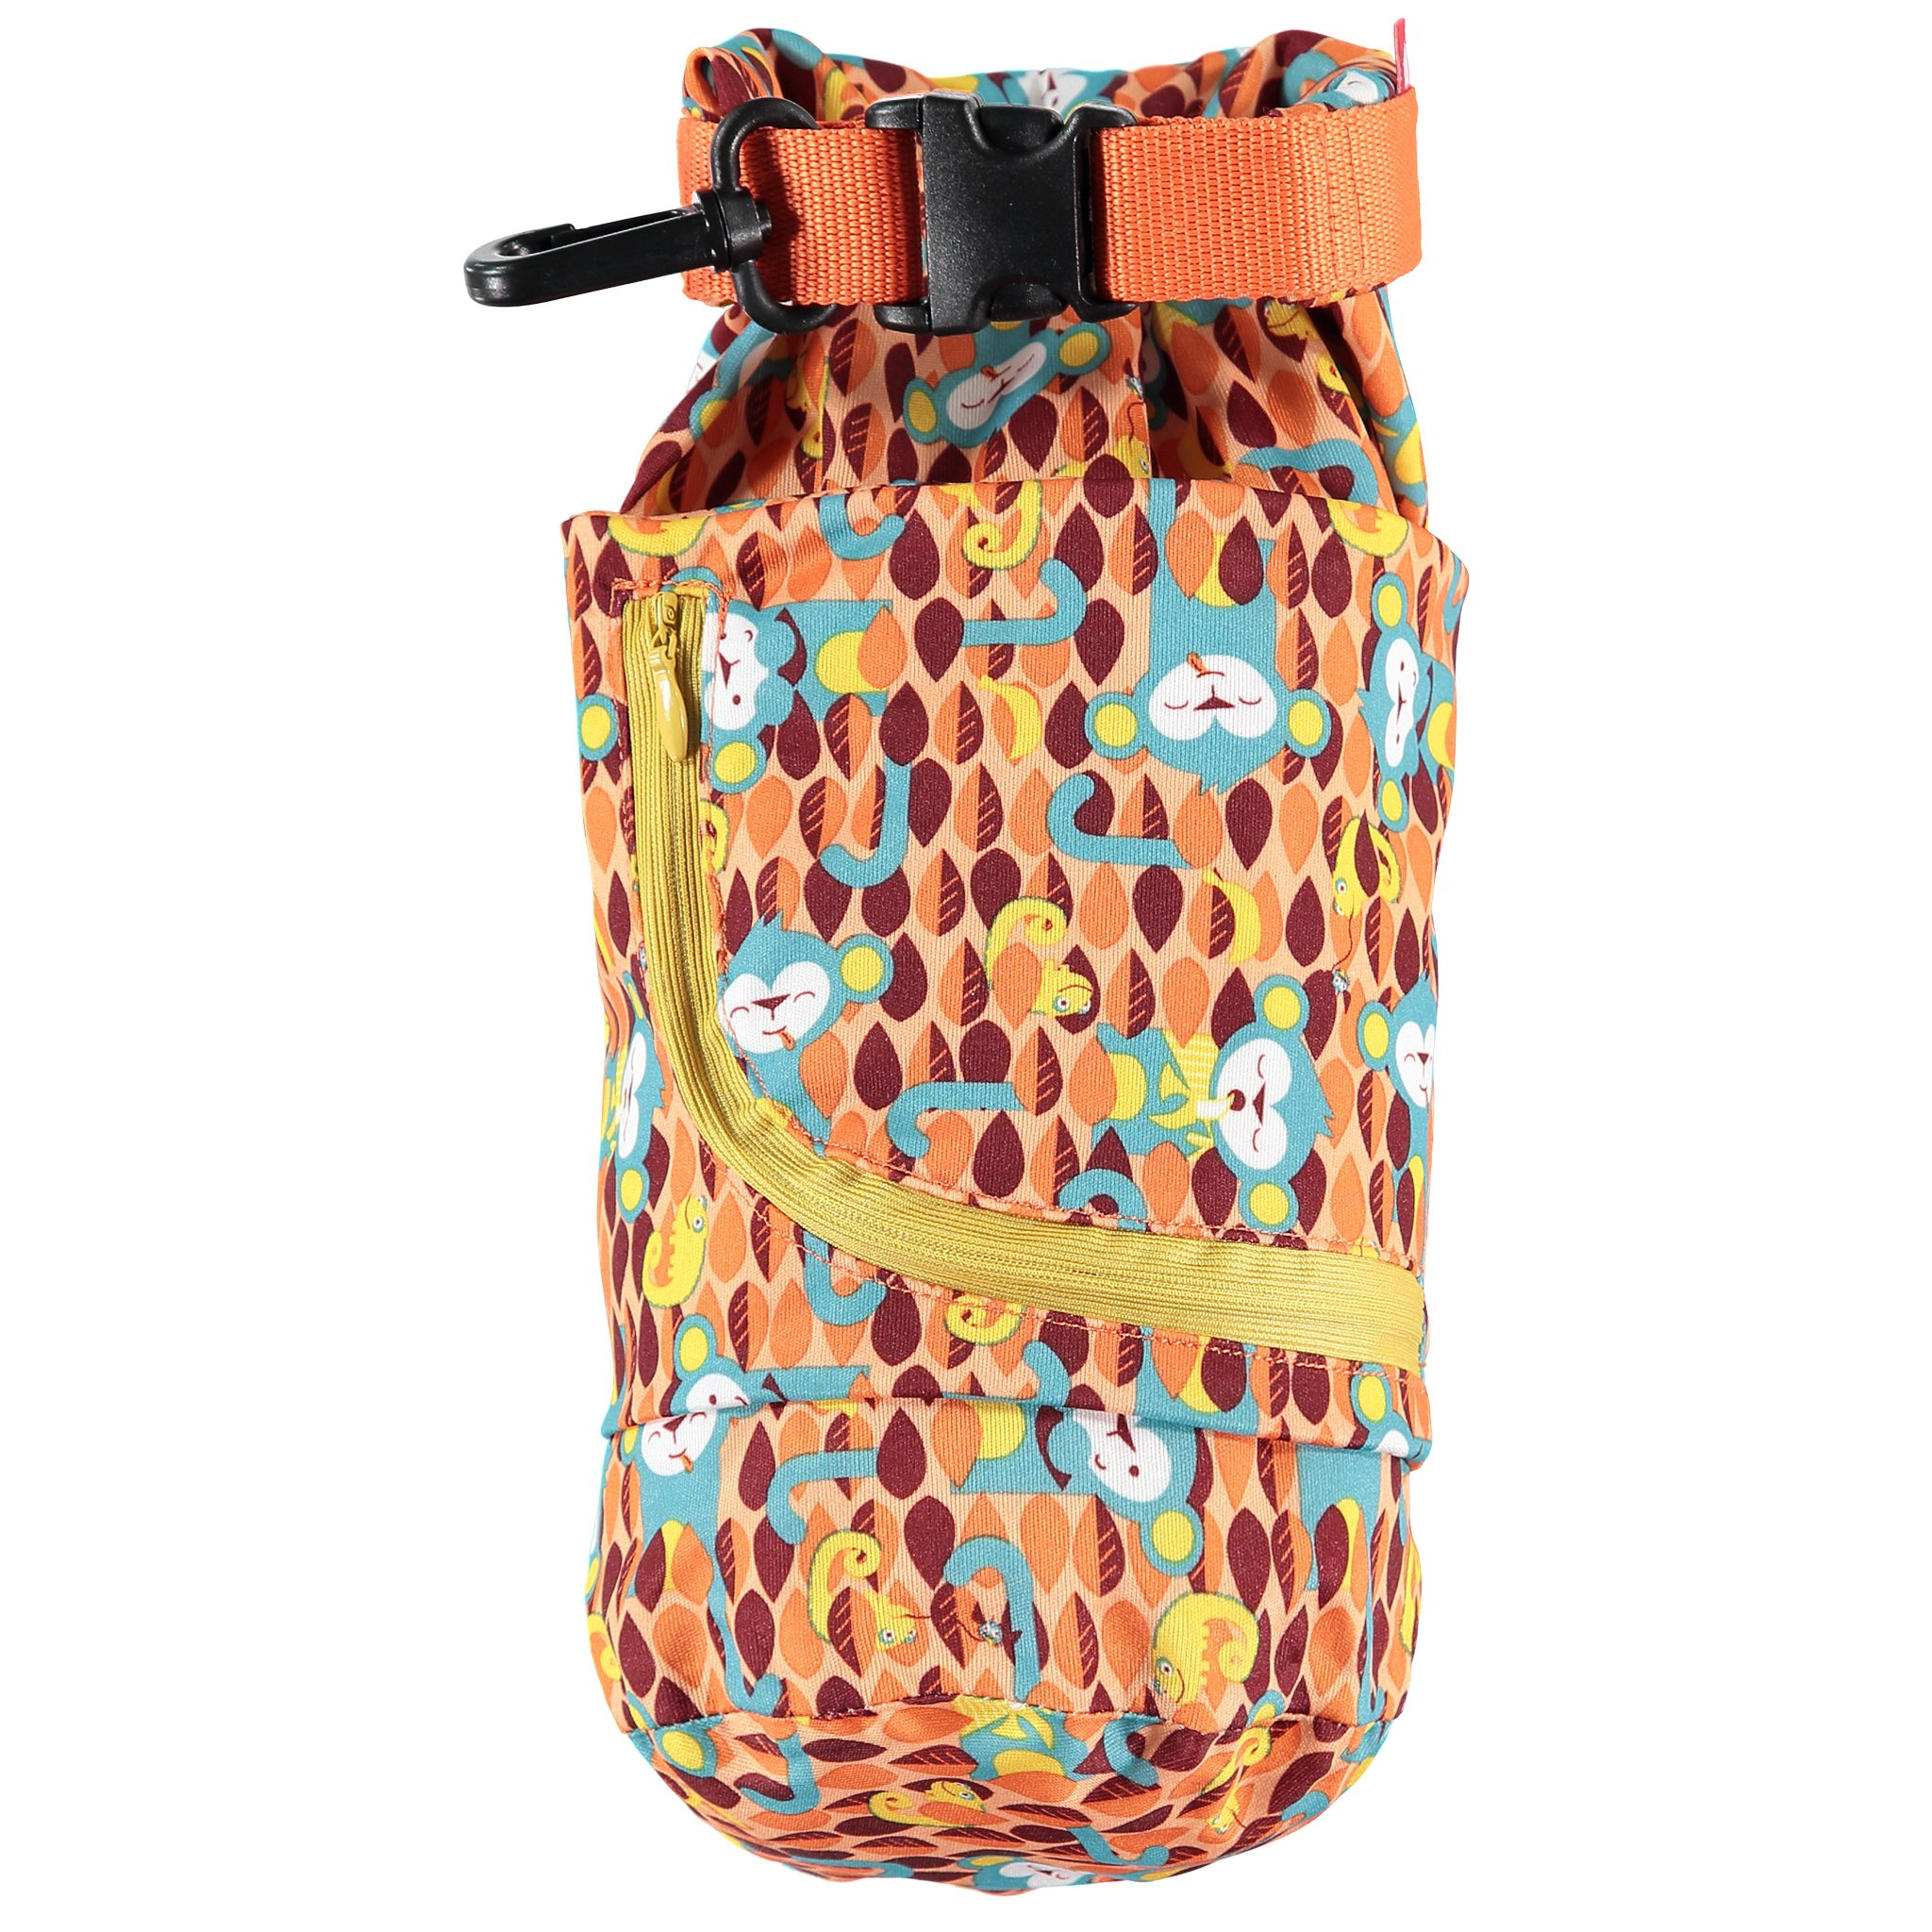 Pop-in Printed Stuff Sack, Ticky and Bert by Pop-in